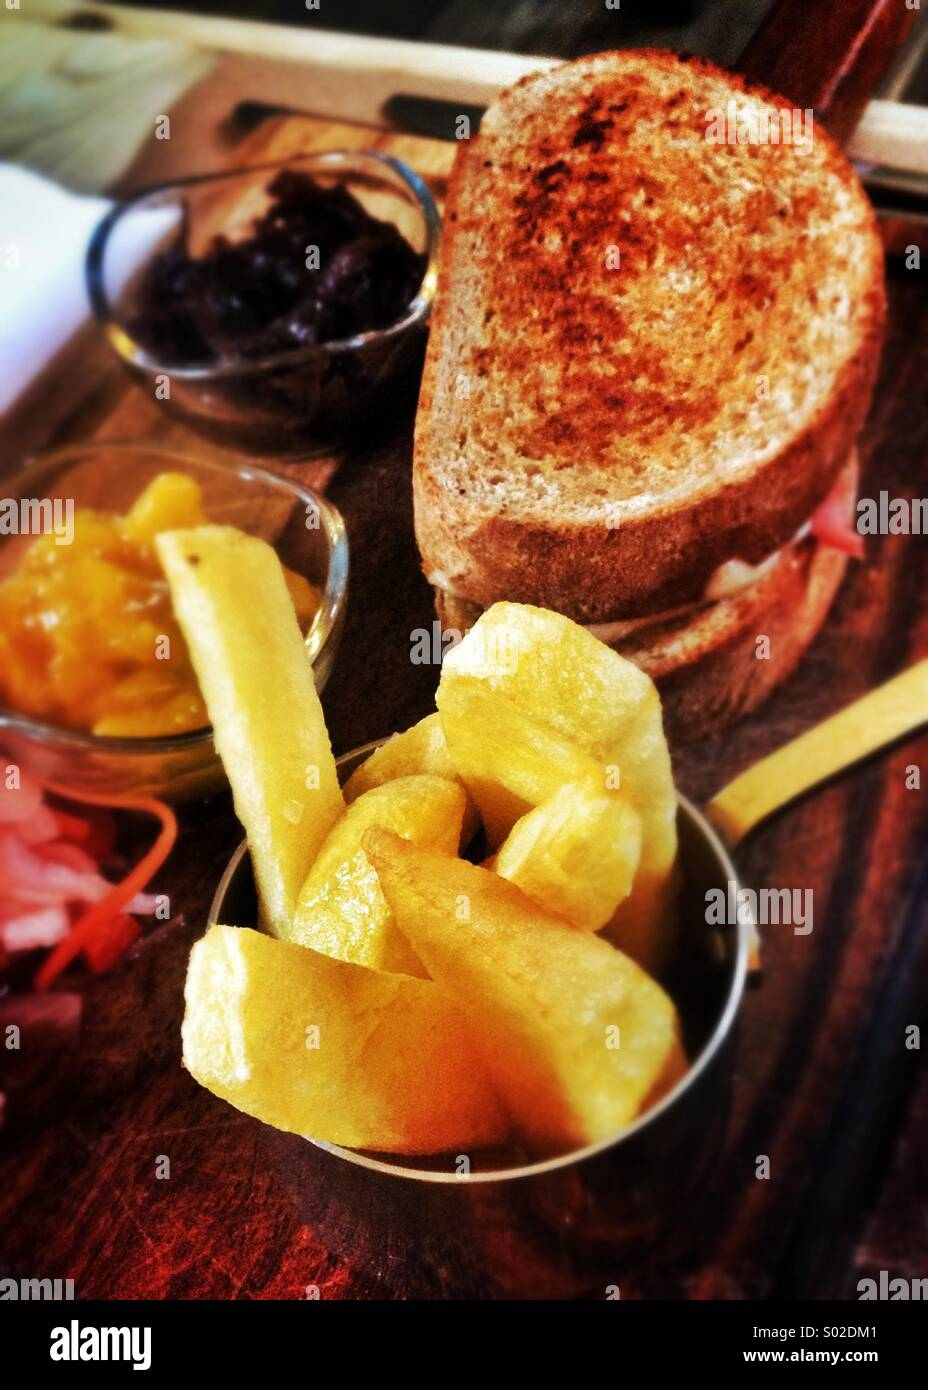 Plough mans lunch, British pub food - Stock Image